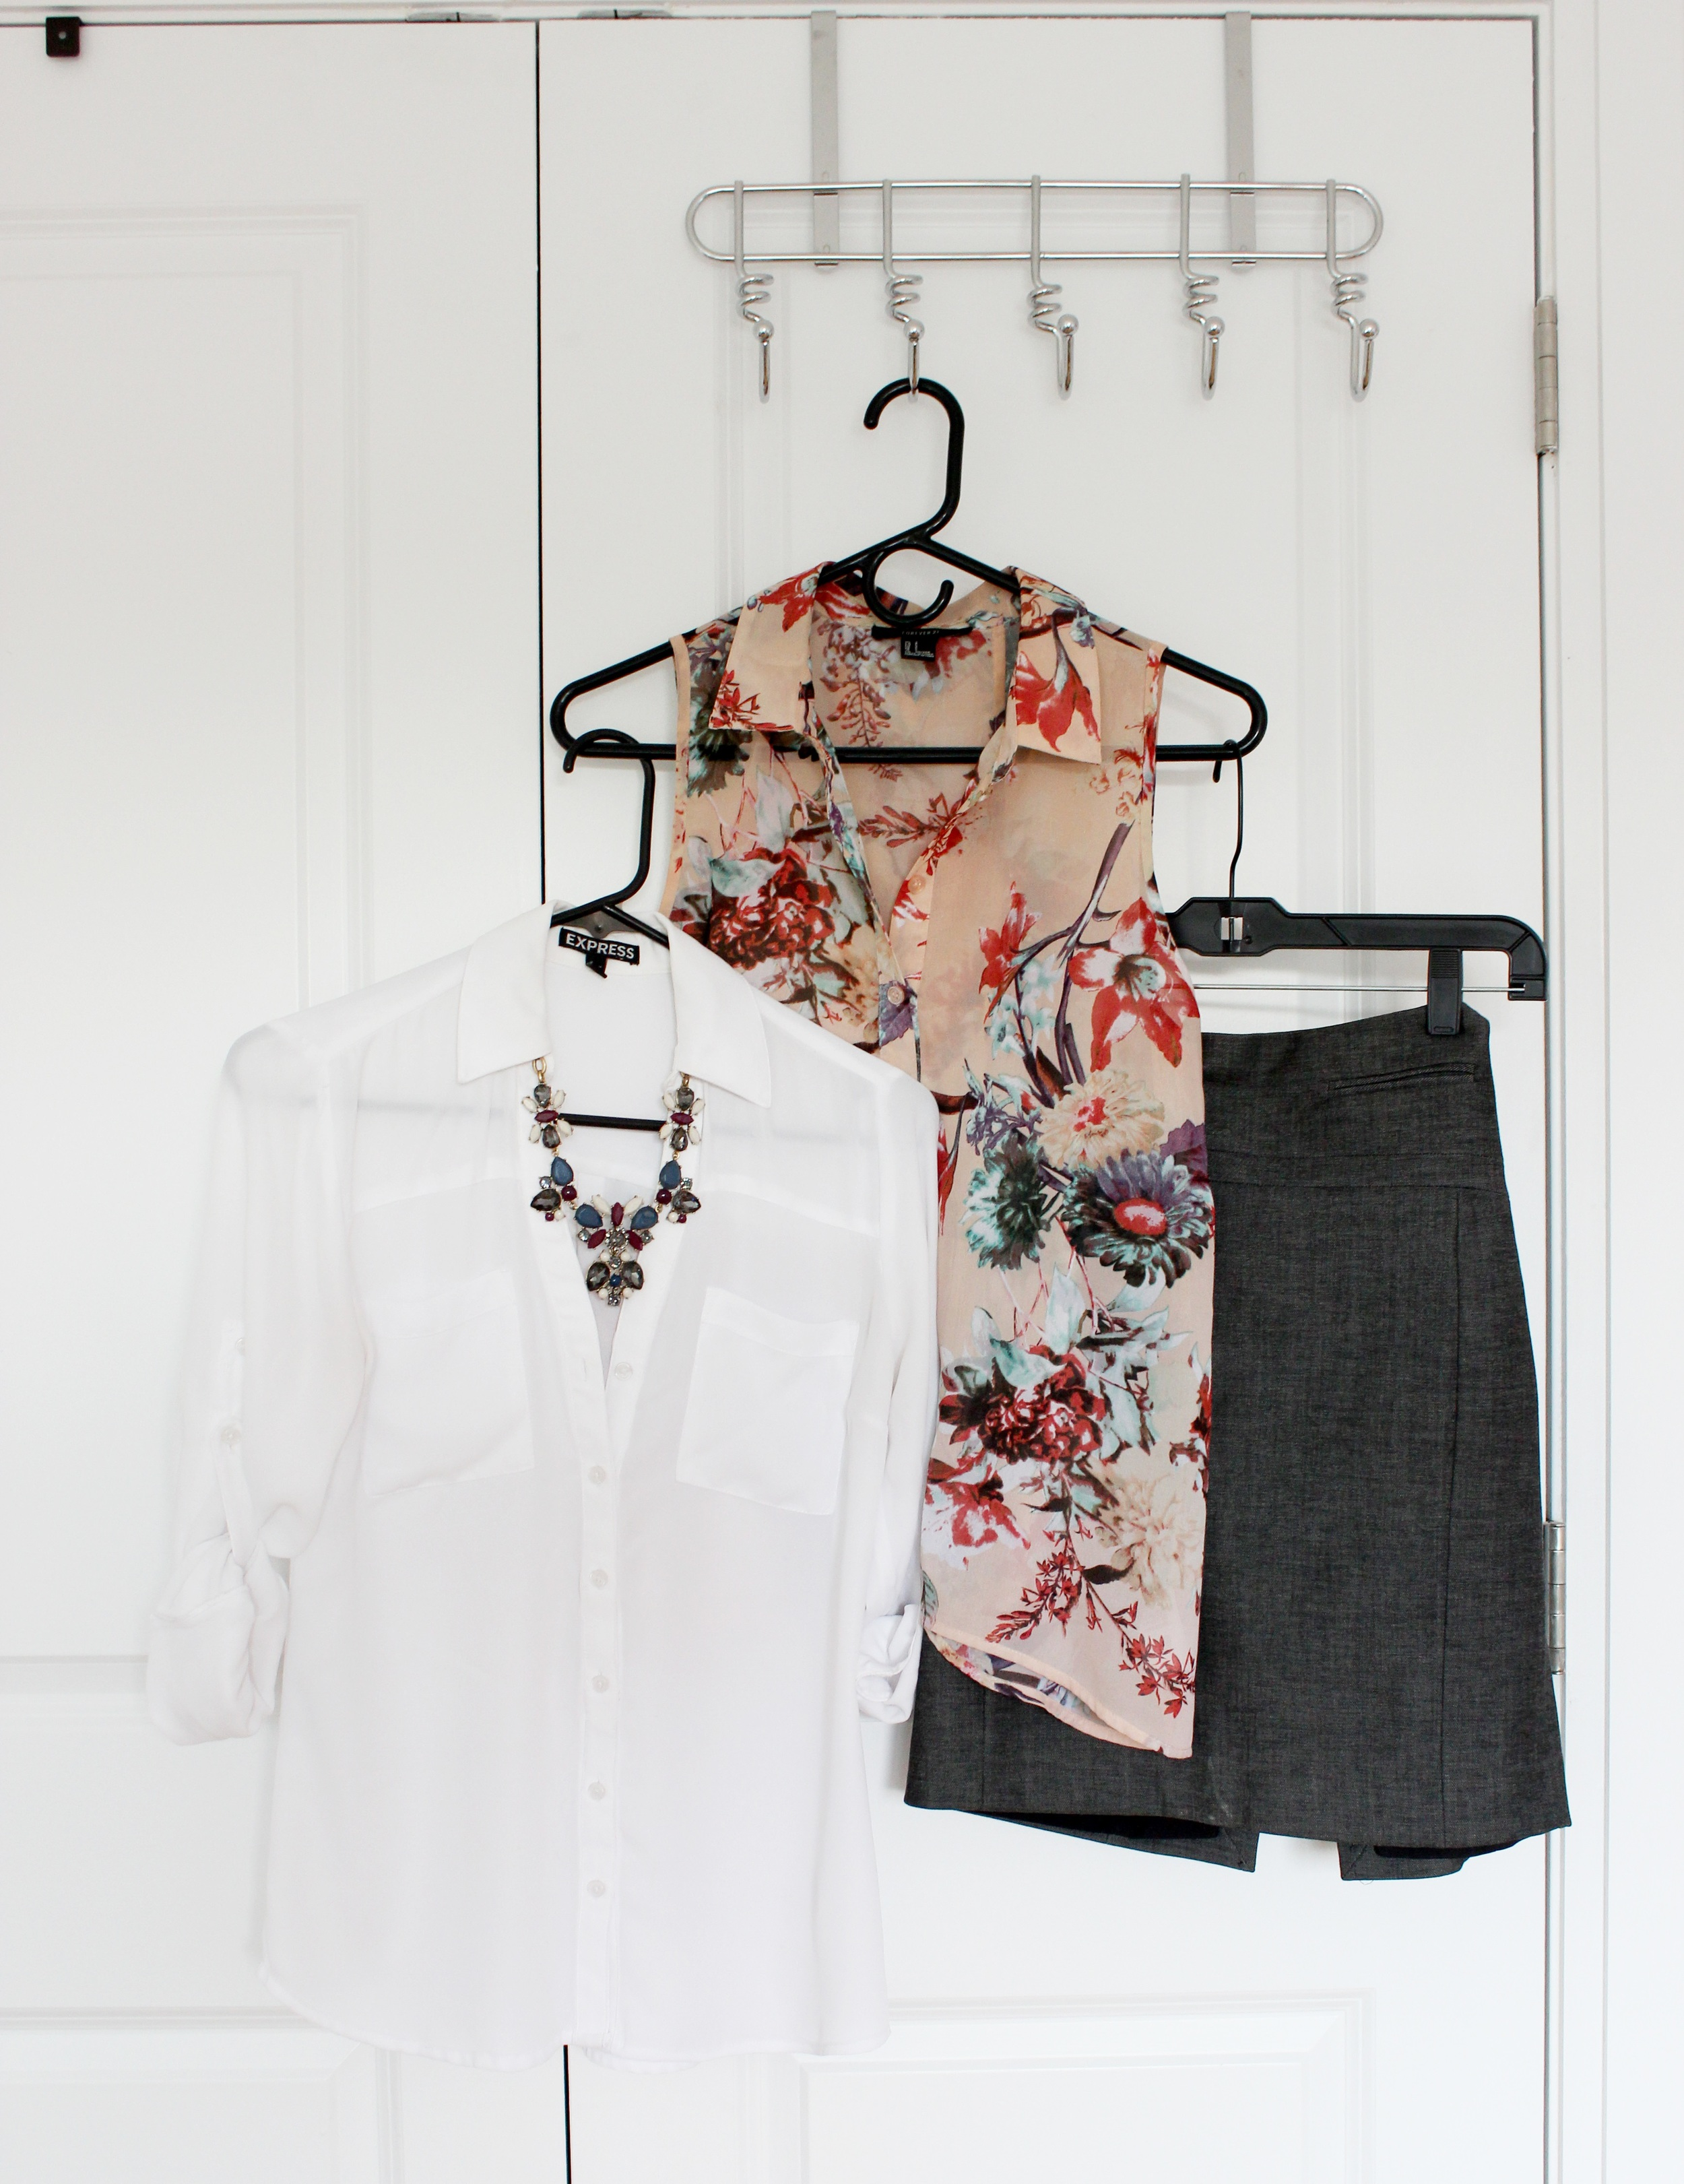 Left to right: 1. White shirt ( Express , old) 2. Necklace ( Jcrew , old) 3. Floral top ( Forever21 , old) 4. ( Express , old)